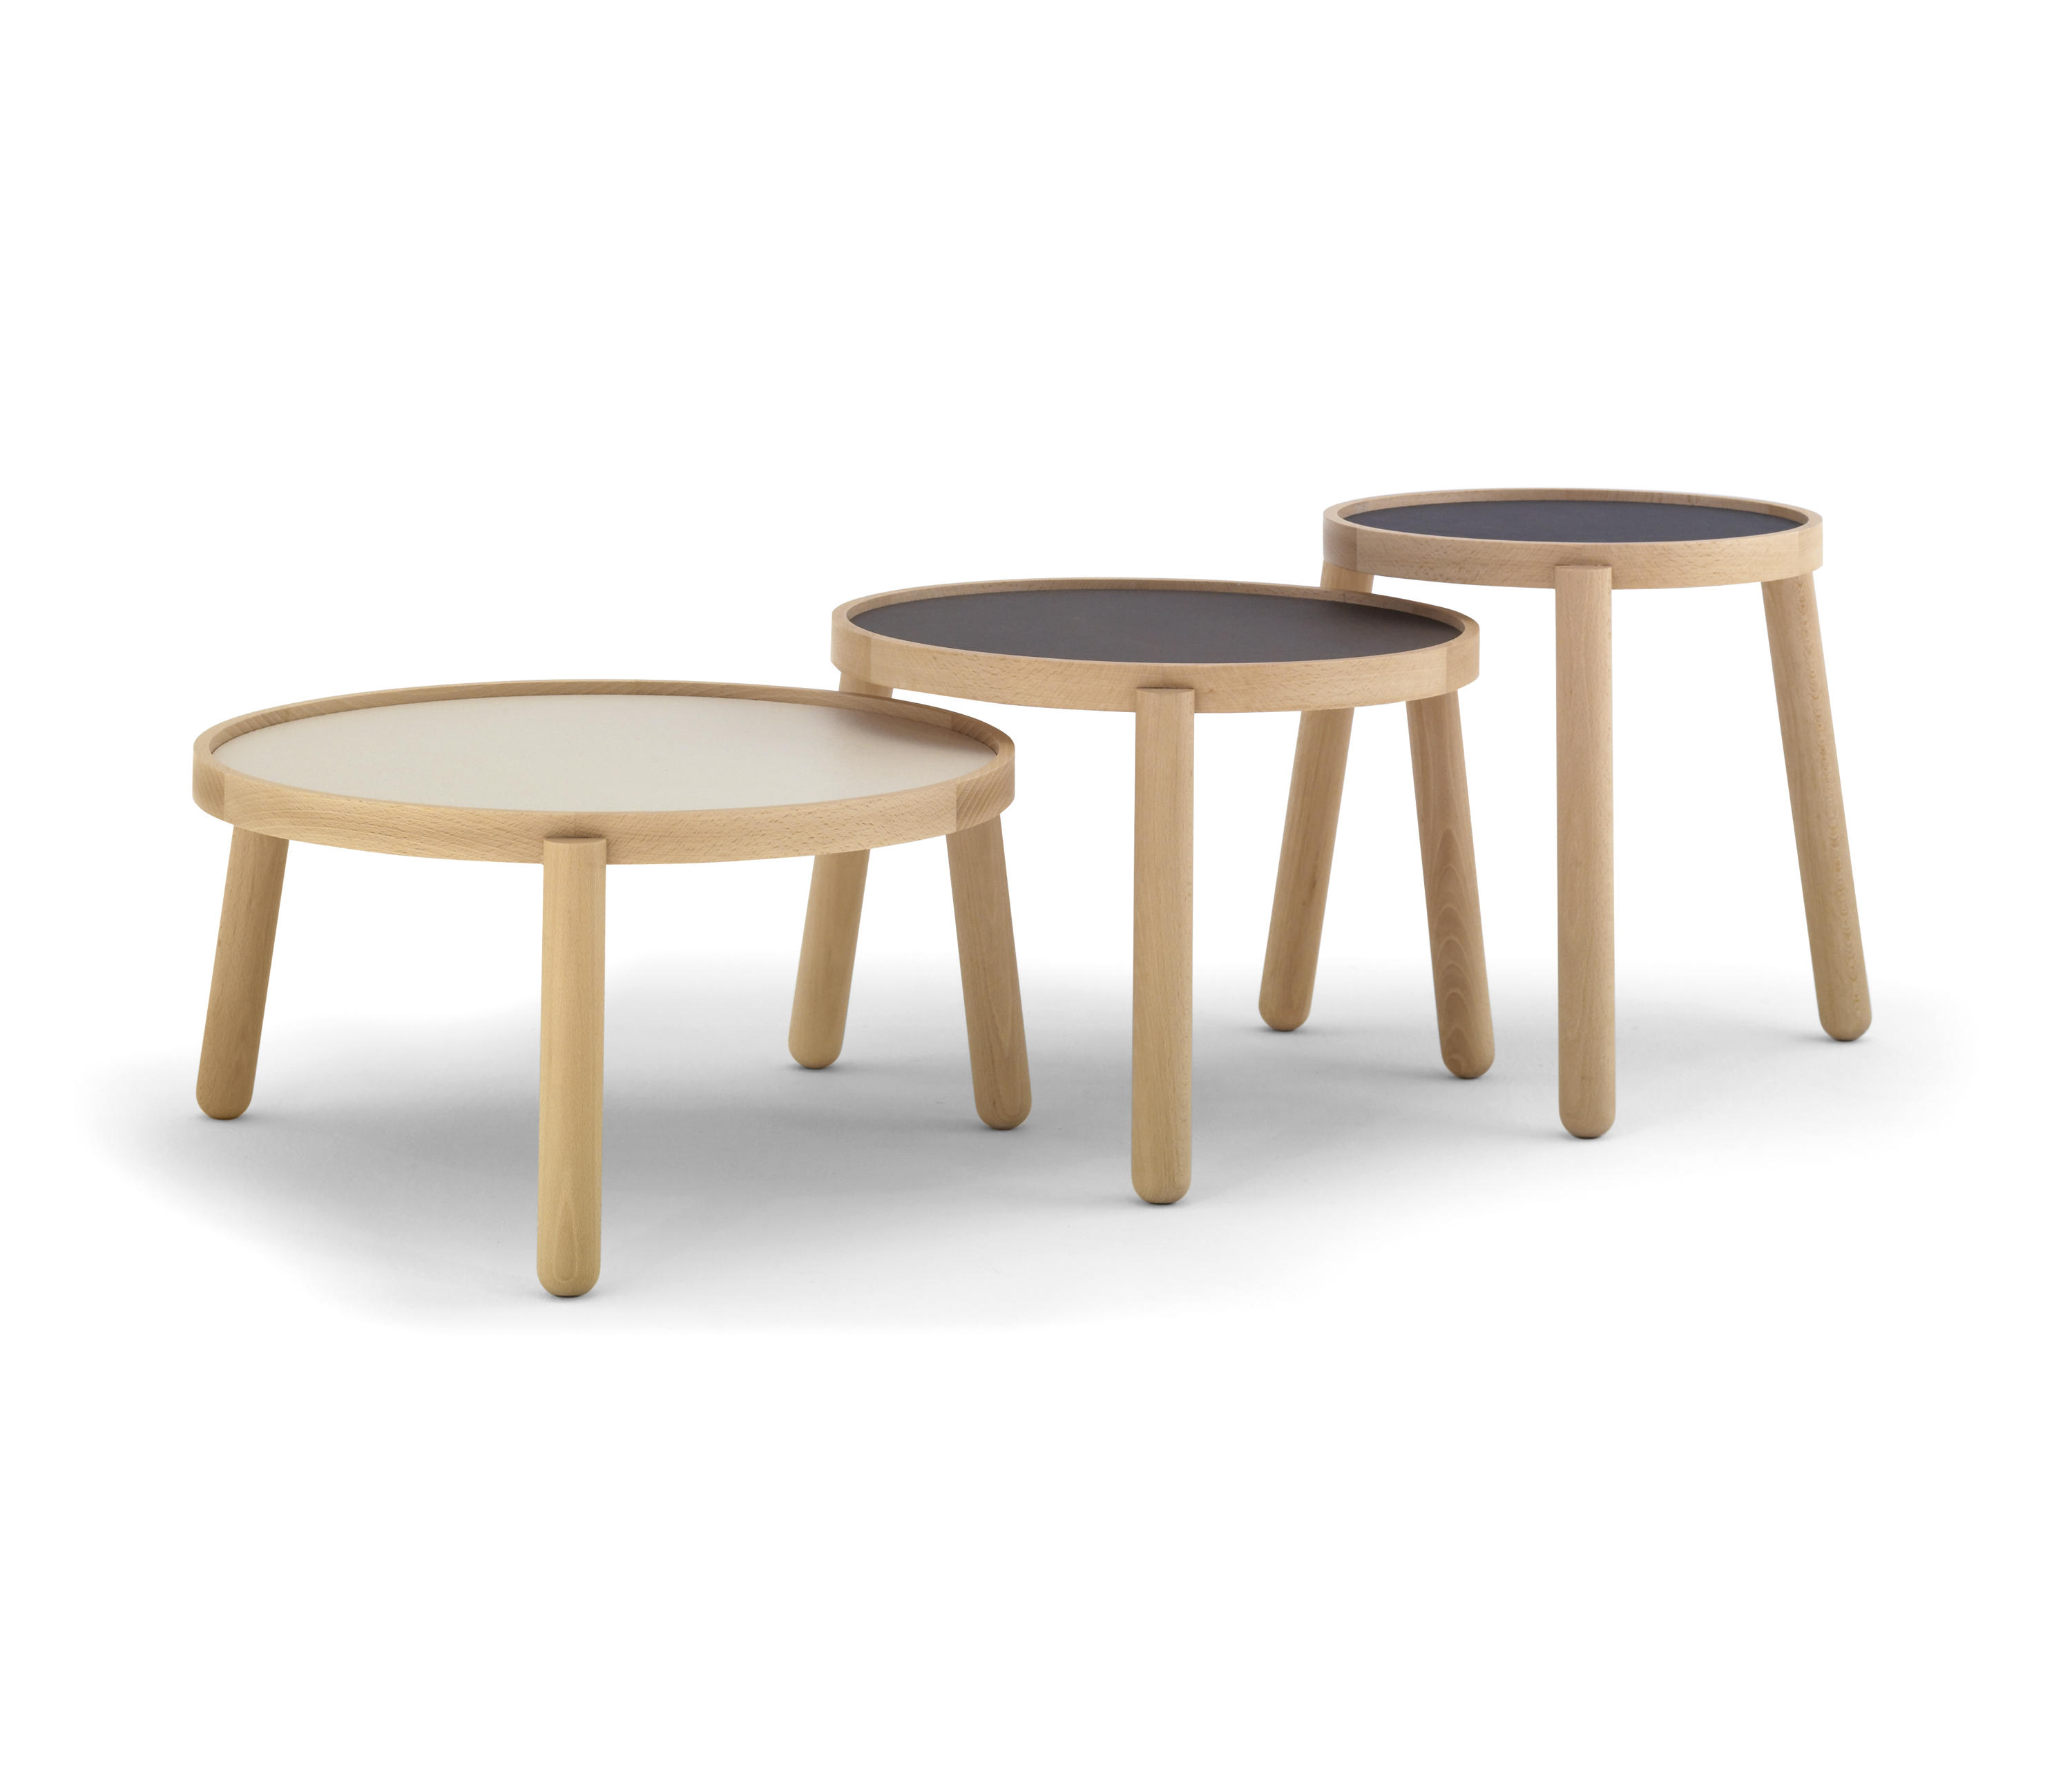 Van side tables from kendo mobiliario architonic - Kendo mobiliario ...